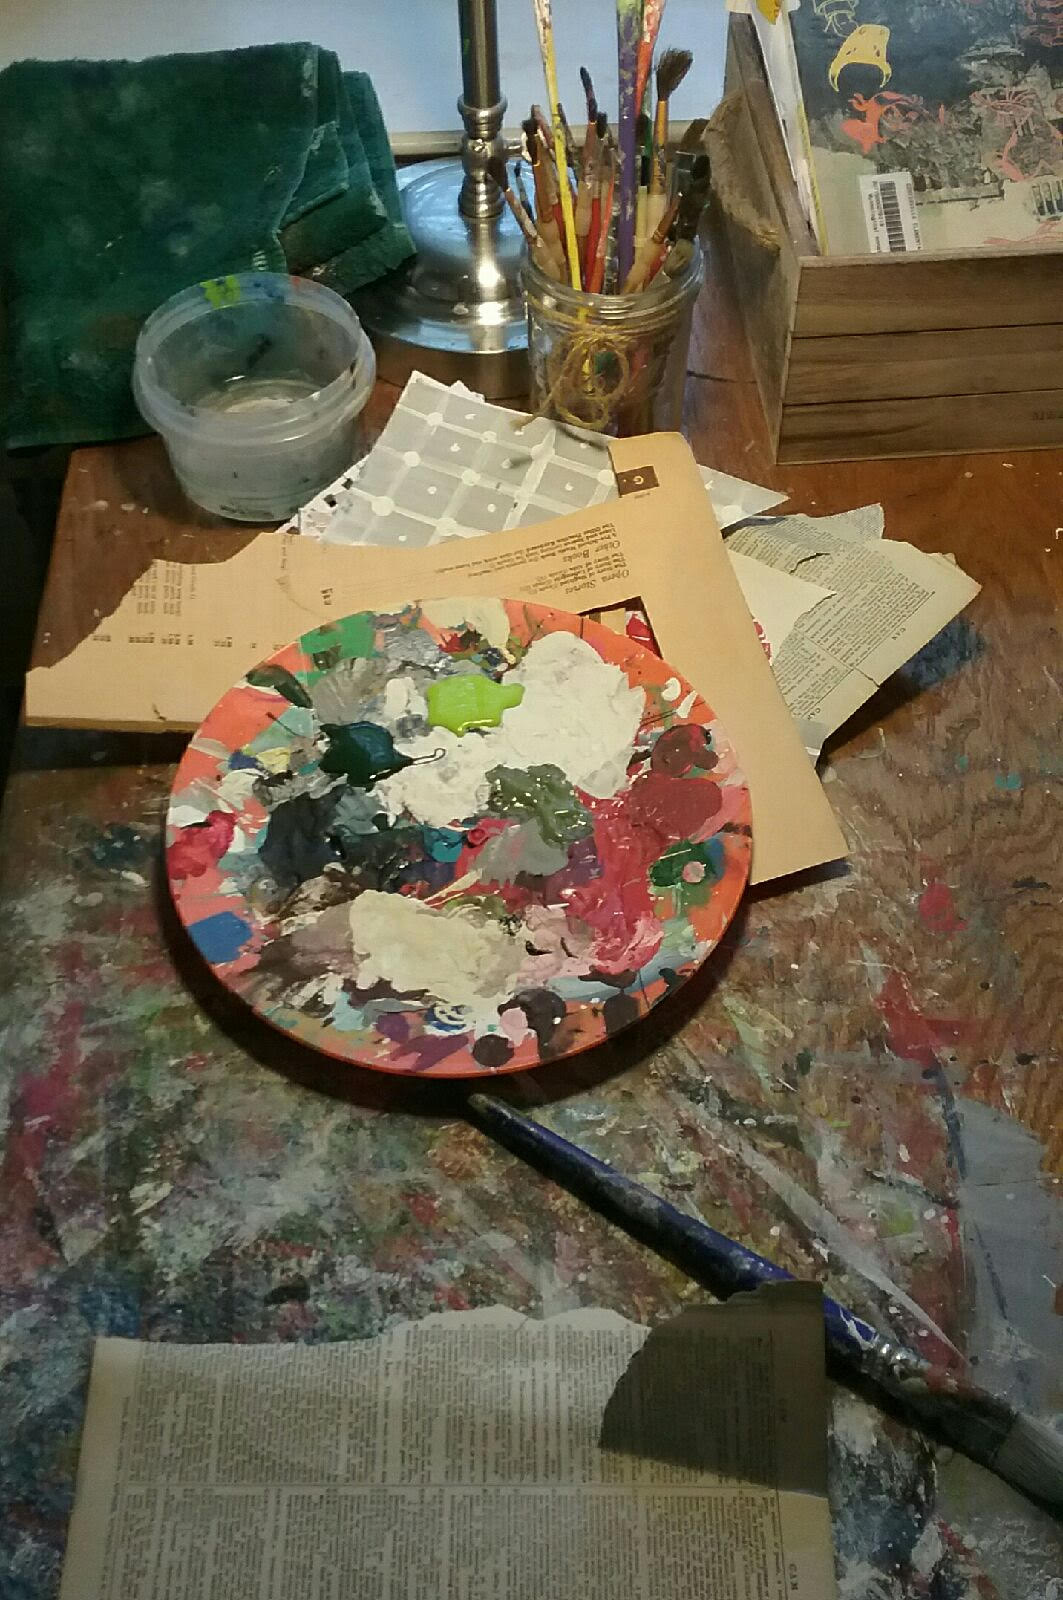 messytableunnamed